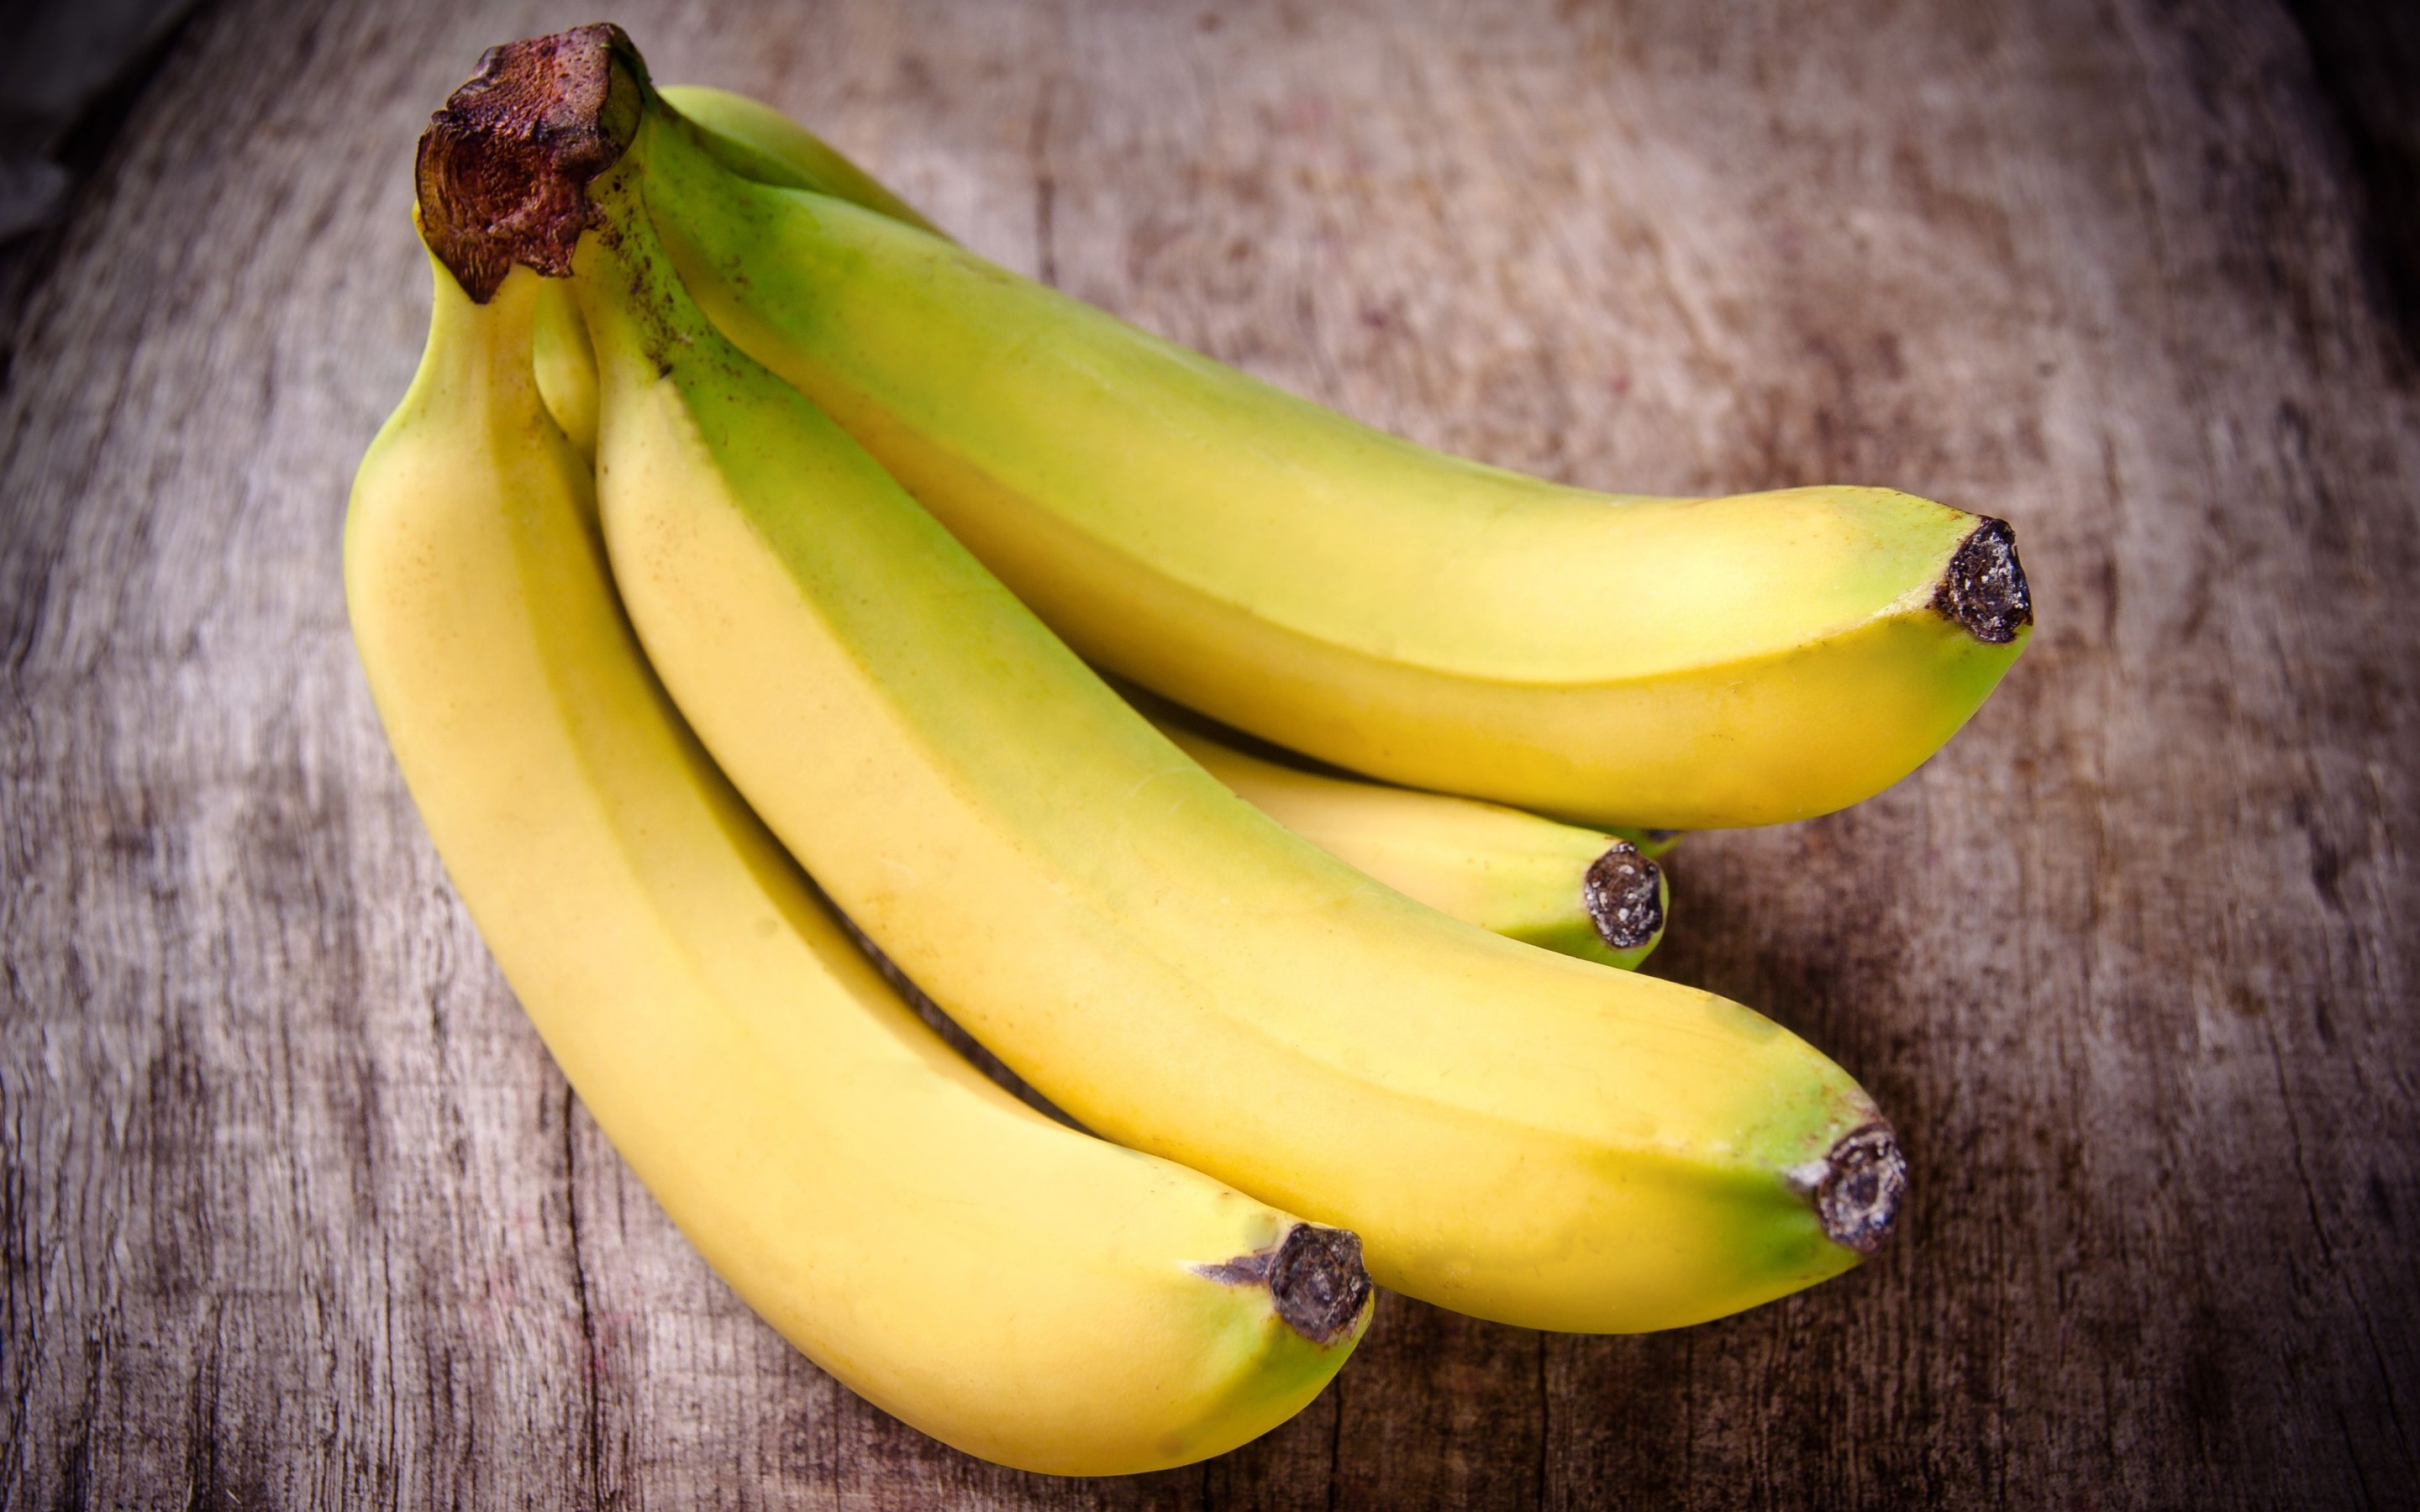 banana hd wallpaper | background image | 2880x1800 | id:436243